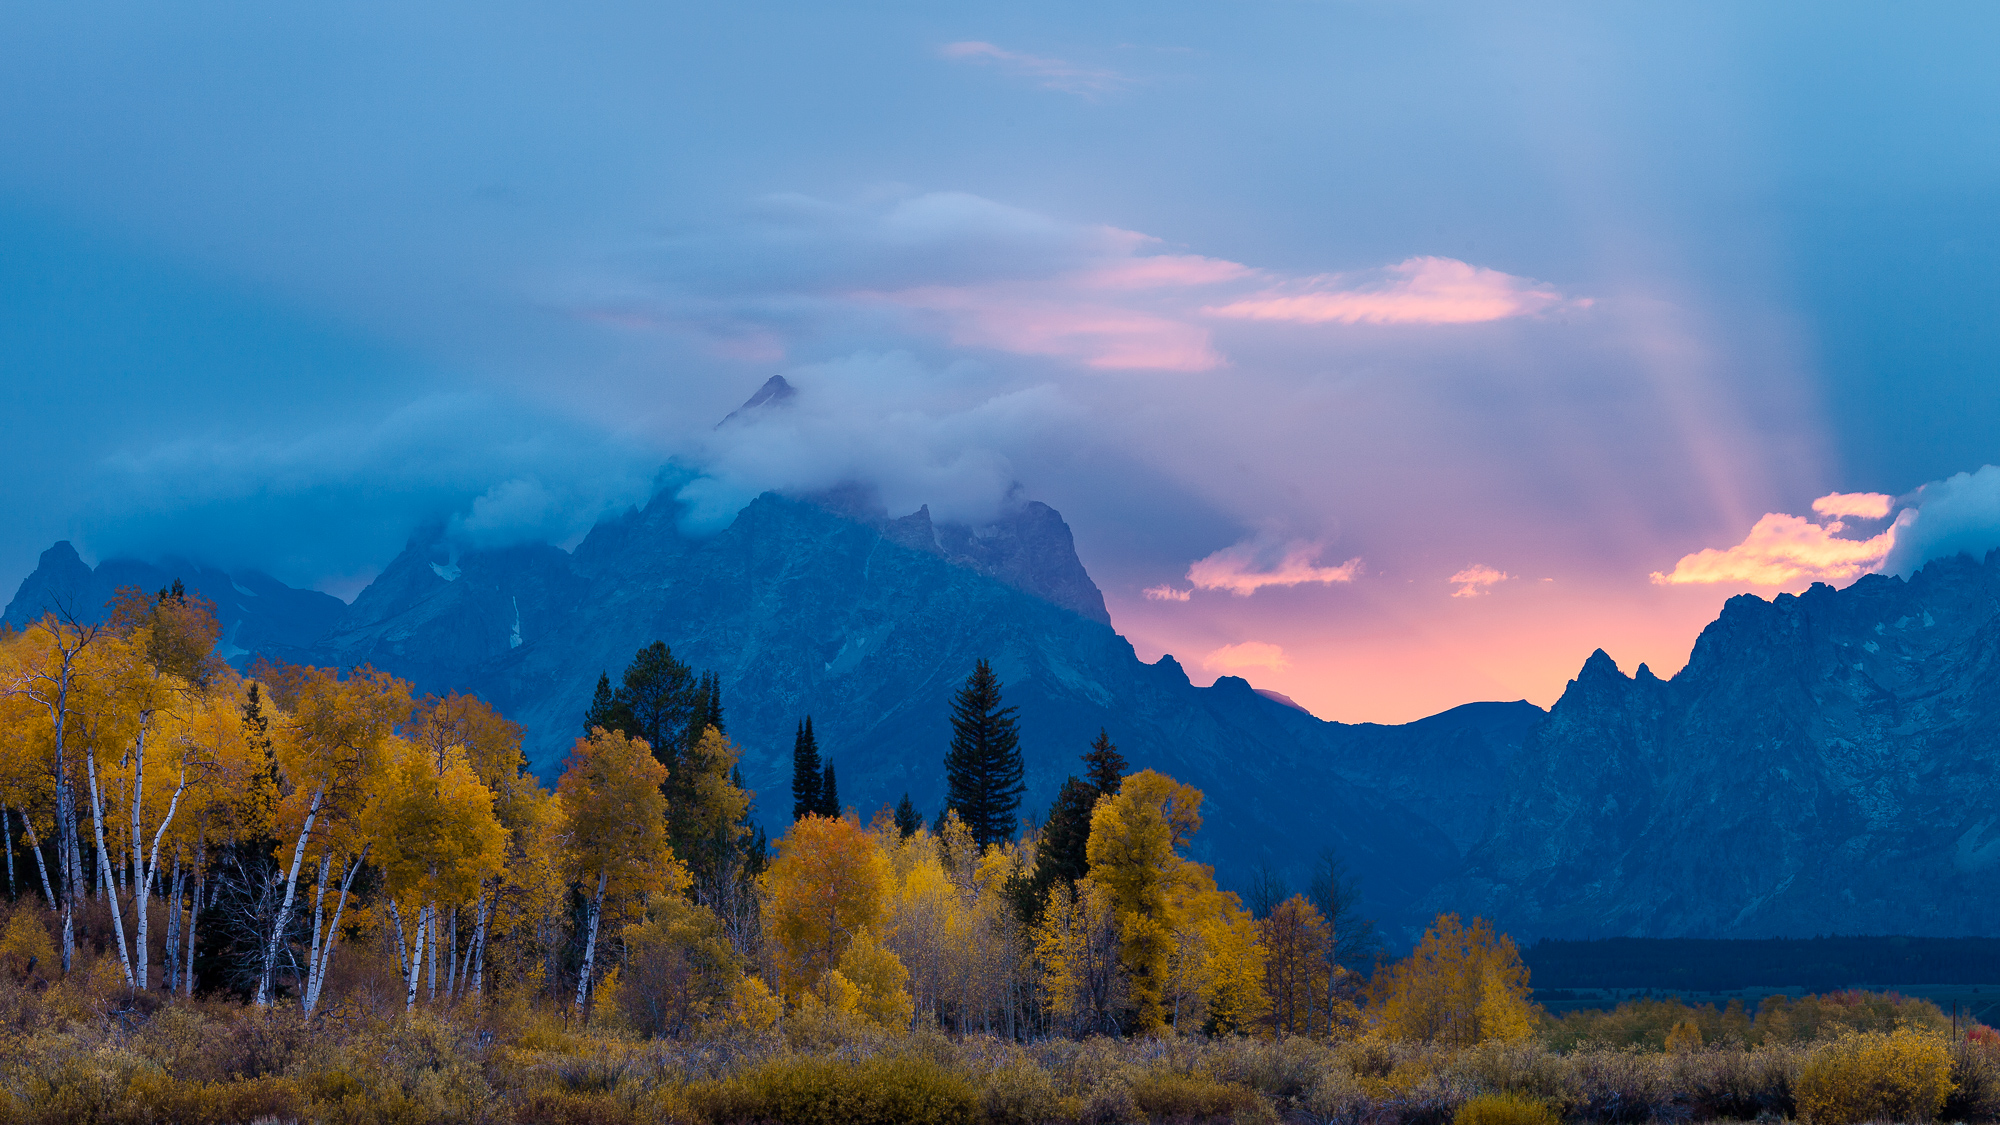 Dramatic light bursts from behind the Tetons at sunset.  Thick smoke and haze from nearby forest fires create God beams as the sun drops behind the horizon, Grand Teton National Park